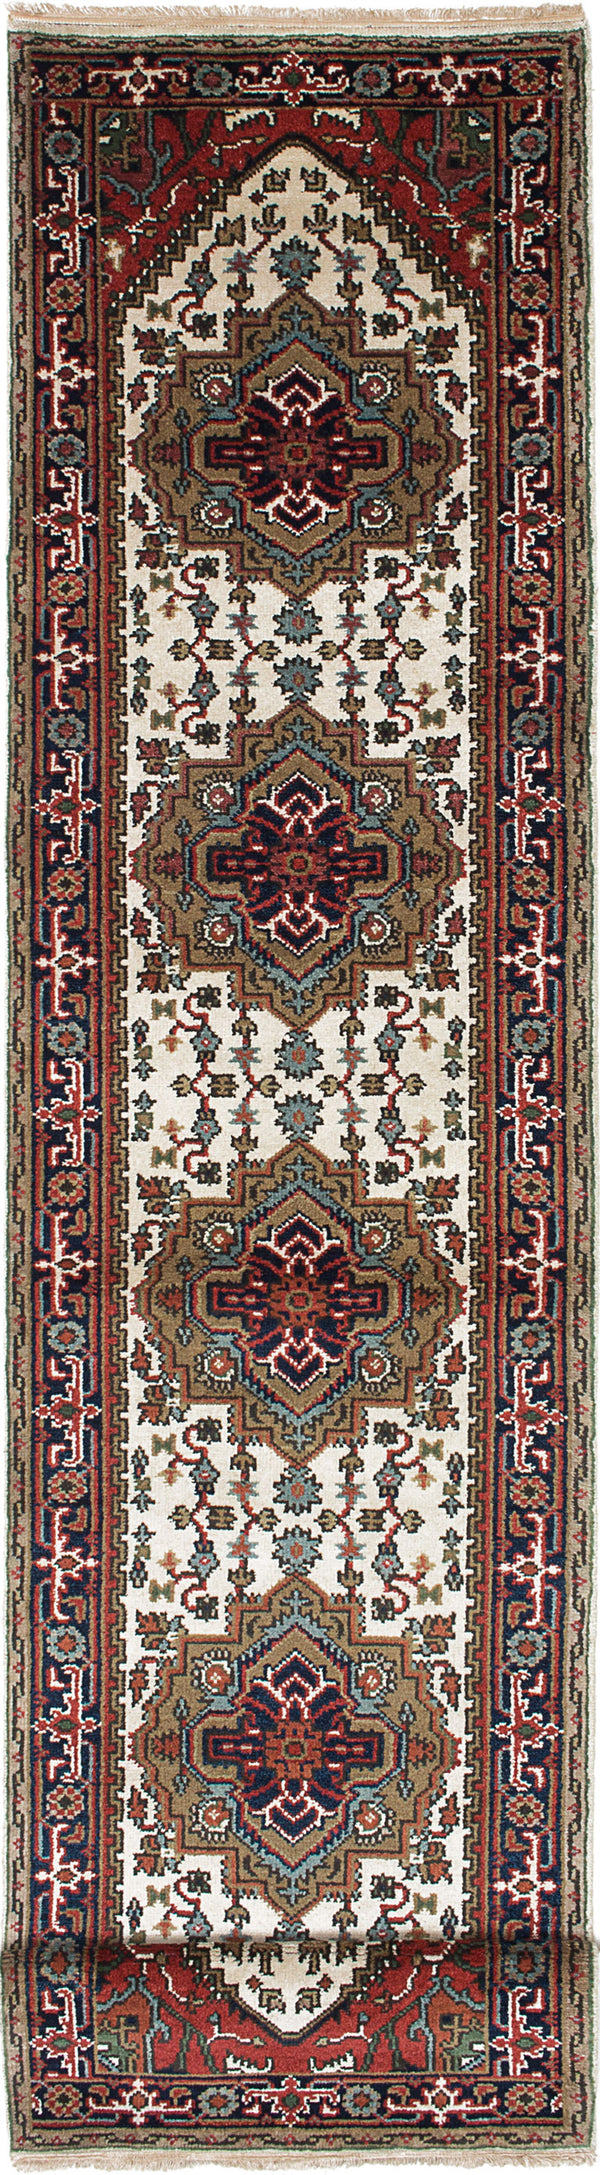 "Hand-knotted Indian Floral  Traditional Serapi-Heritage Runner rug  Cream, Navy Blue 2'8 x 13'9"" """